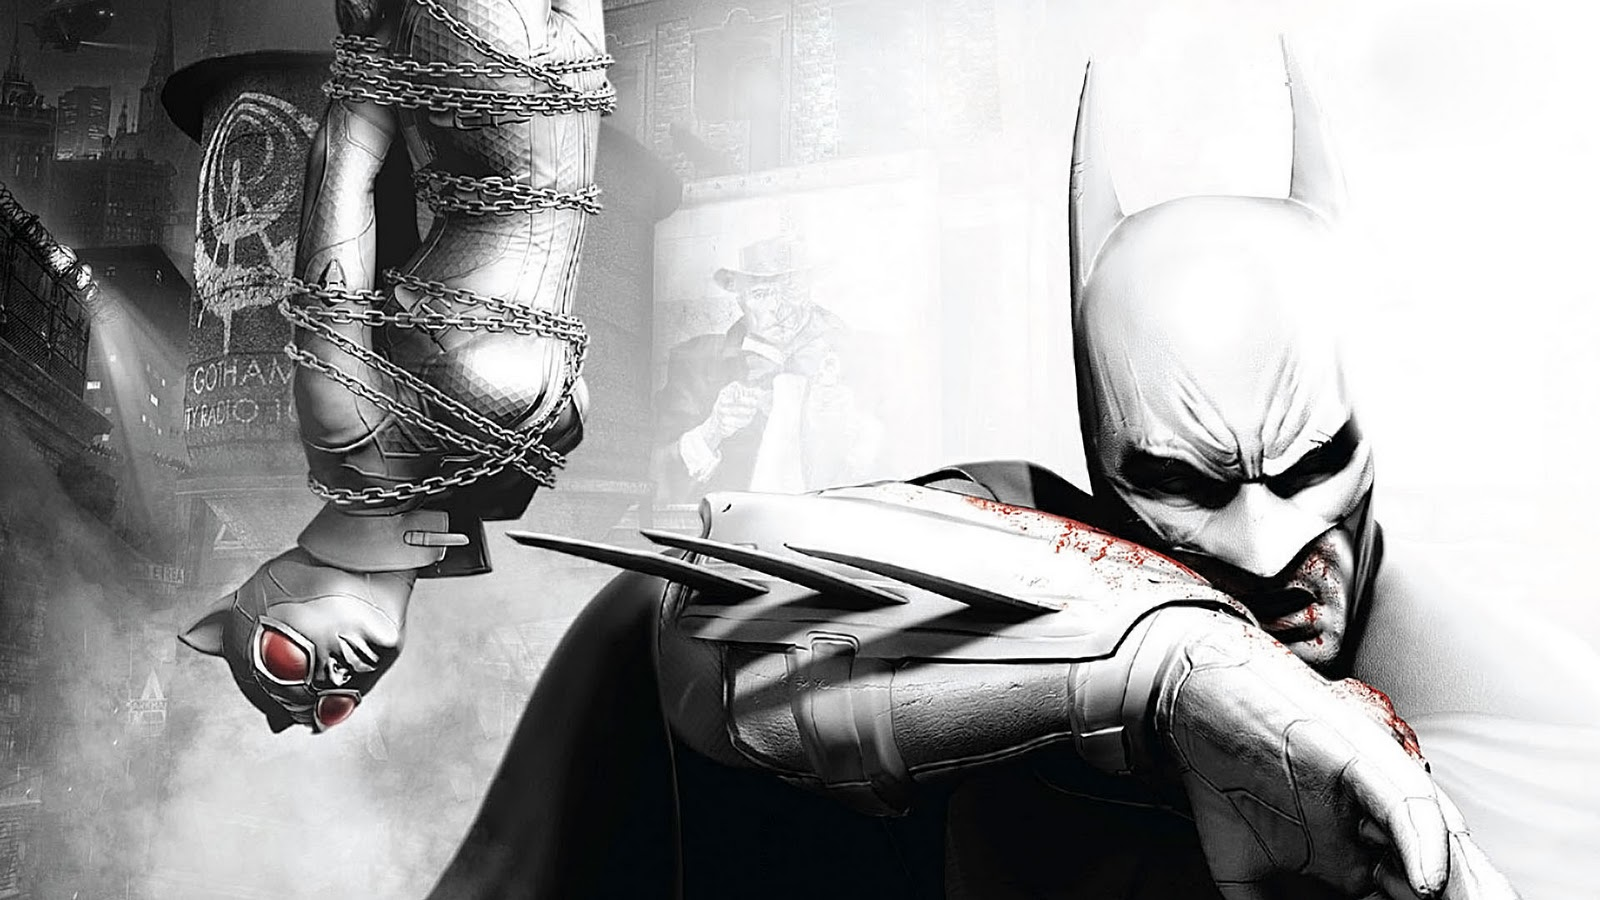 http://3.bp.blogspot.com/-Pu89QGuwitc/TZraBM5dwiI/AAAAAAAAKS4/A6uTlpX8NKc/s1600/batman-arkham-city-wallpaper-hd-1080p-resolution.jpg